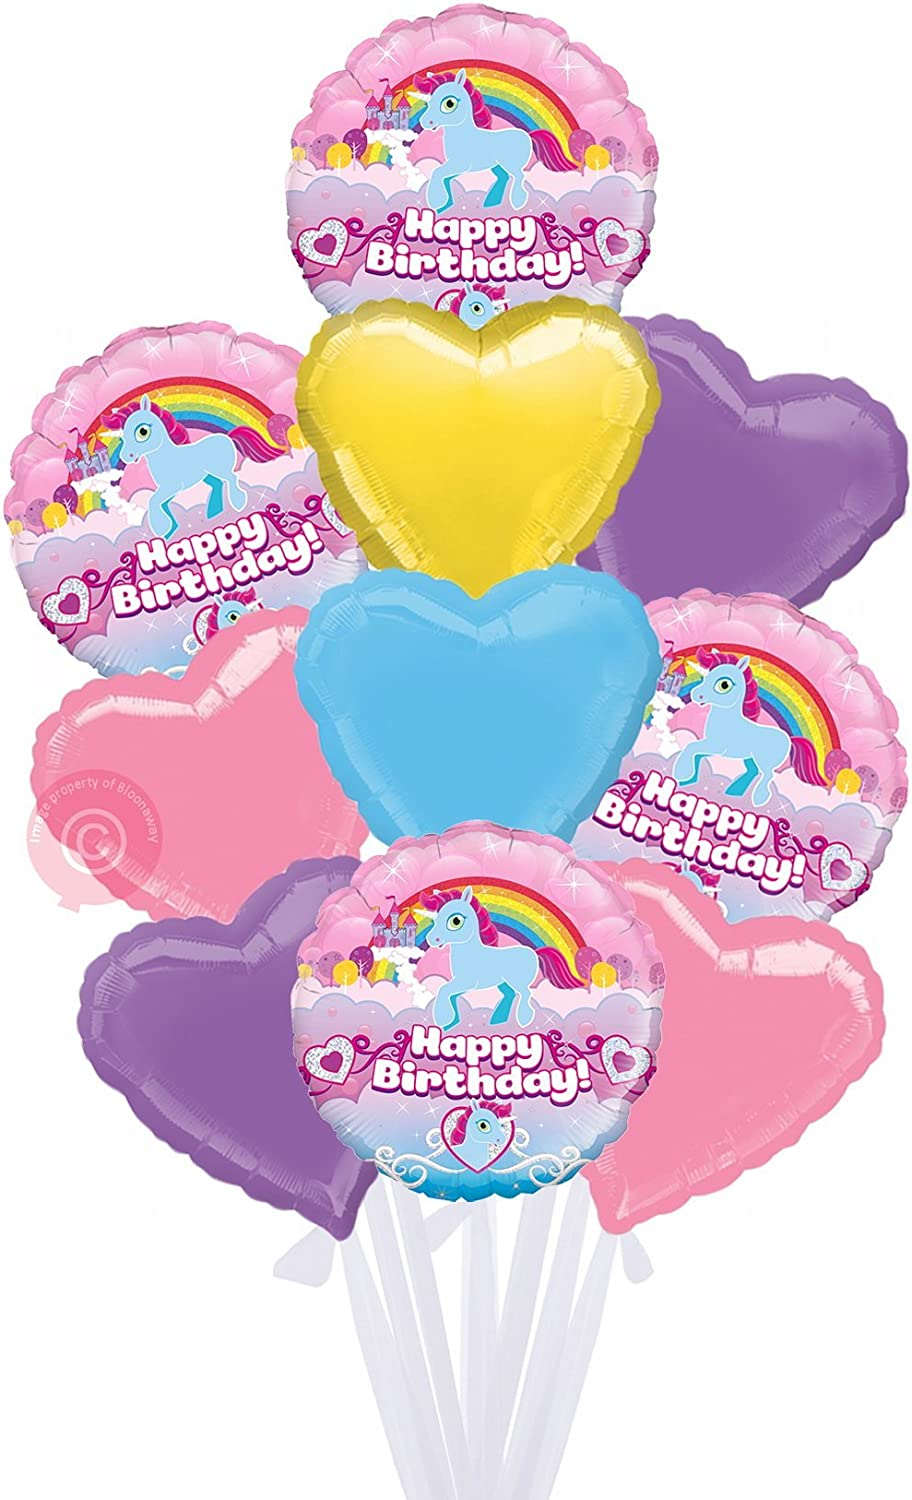 Unicorn Rainbow Birthday Holographic  Inflated Birthday Helium Balloon Delivered in a Box  Biggest Bouquet  10 Balloons  Bloonaway